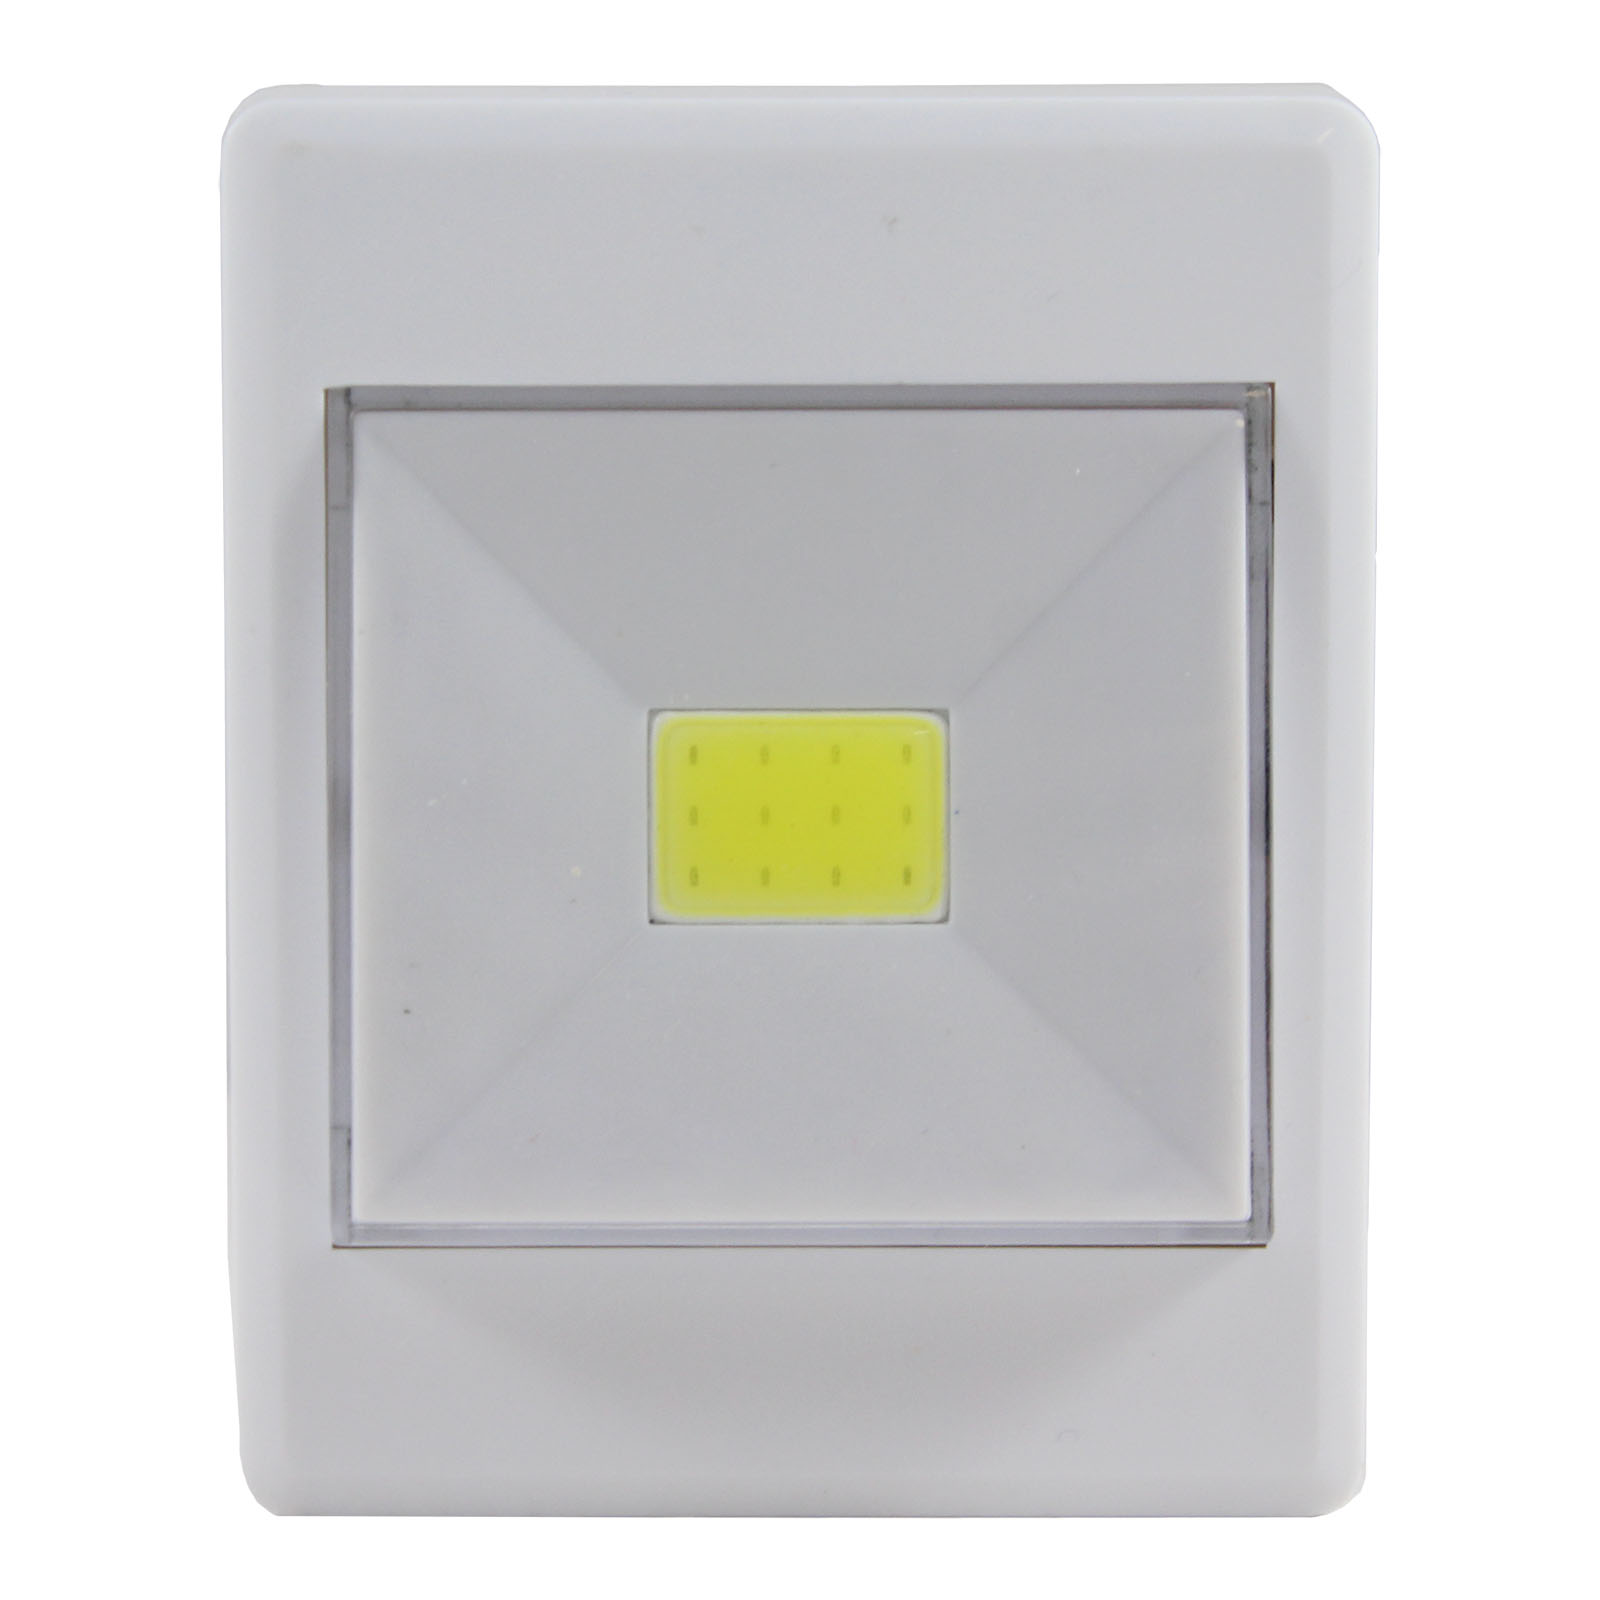 Switch Light Promier 200 Lumen Pivoting Cordless Light Switch